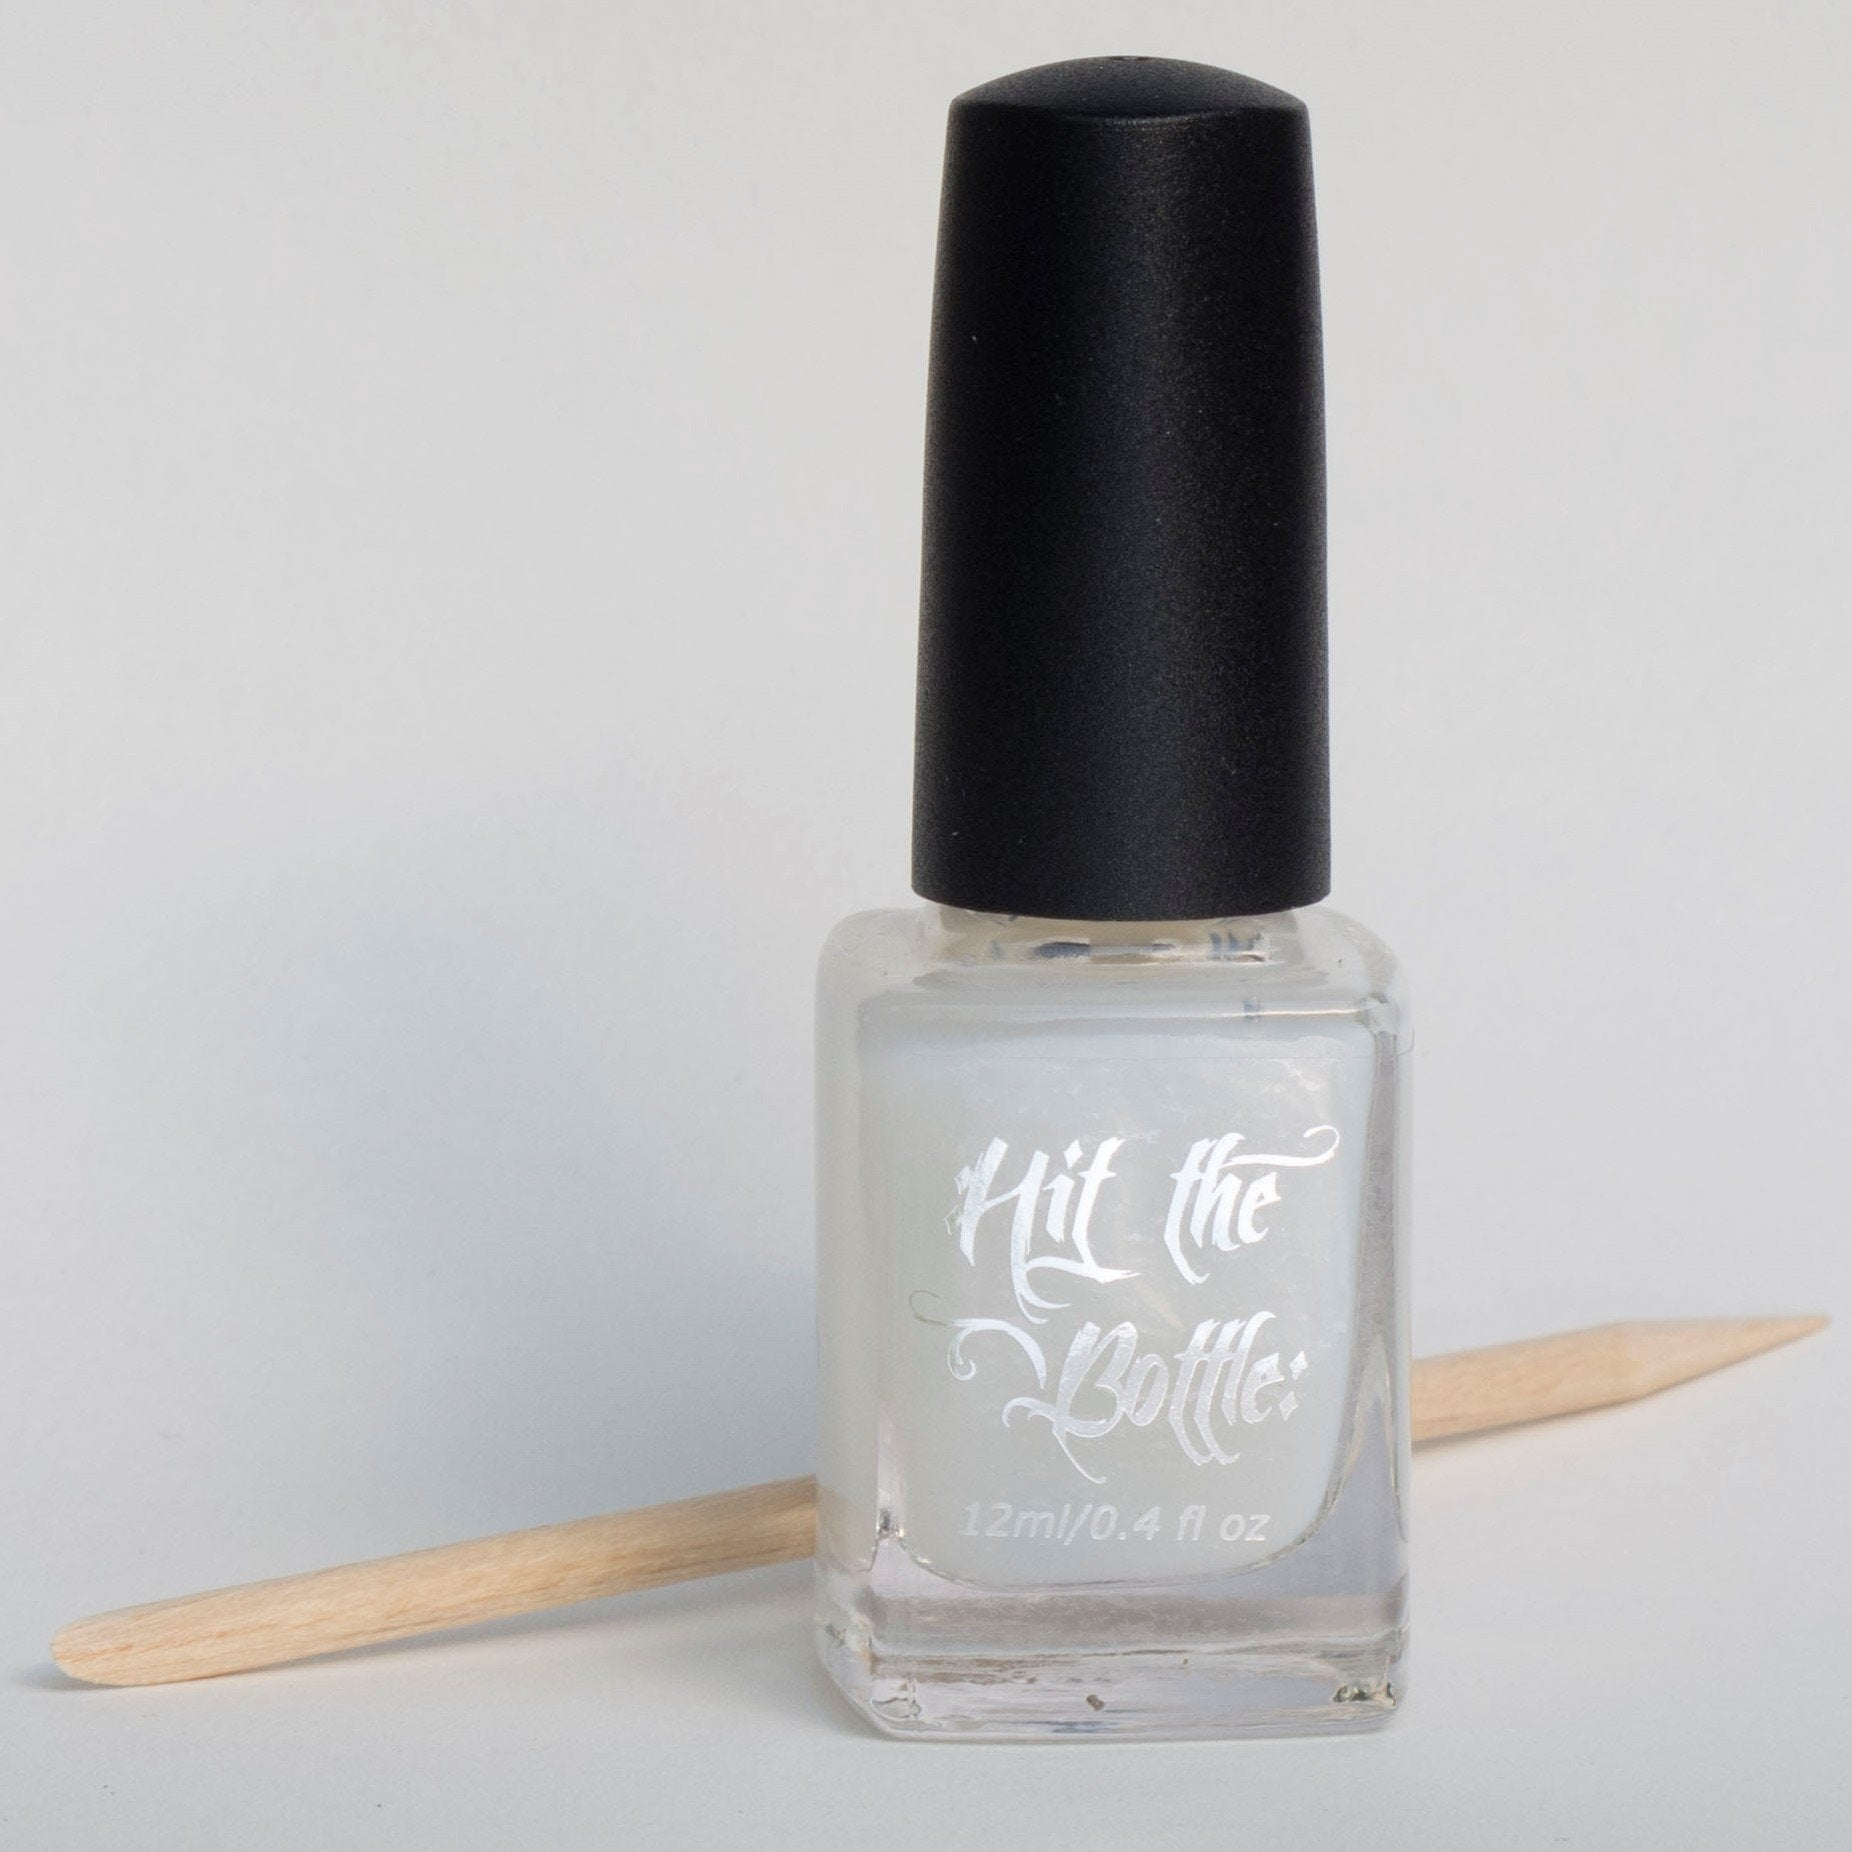 Hit The Bottle - Keepin' It Peel - Peel Off Base Coat